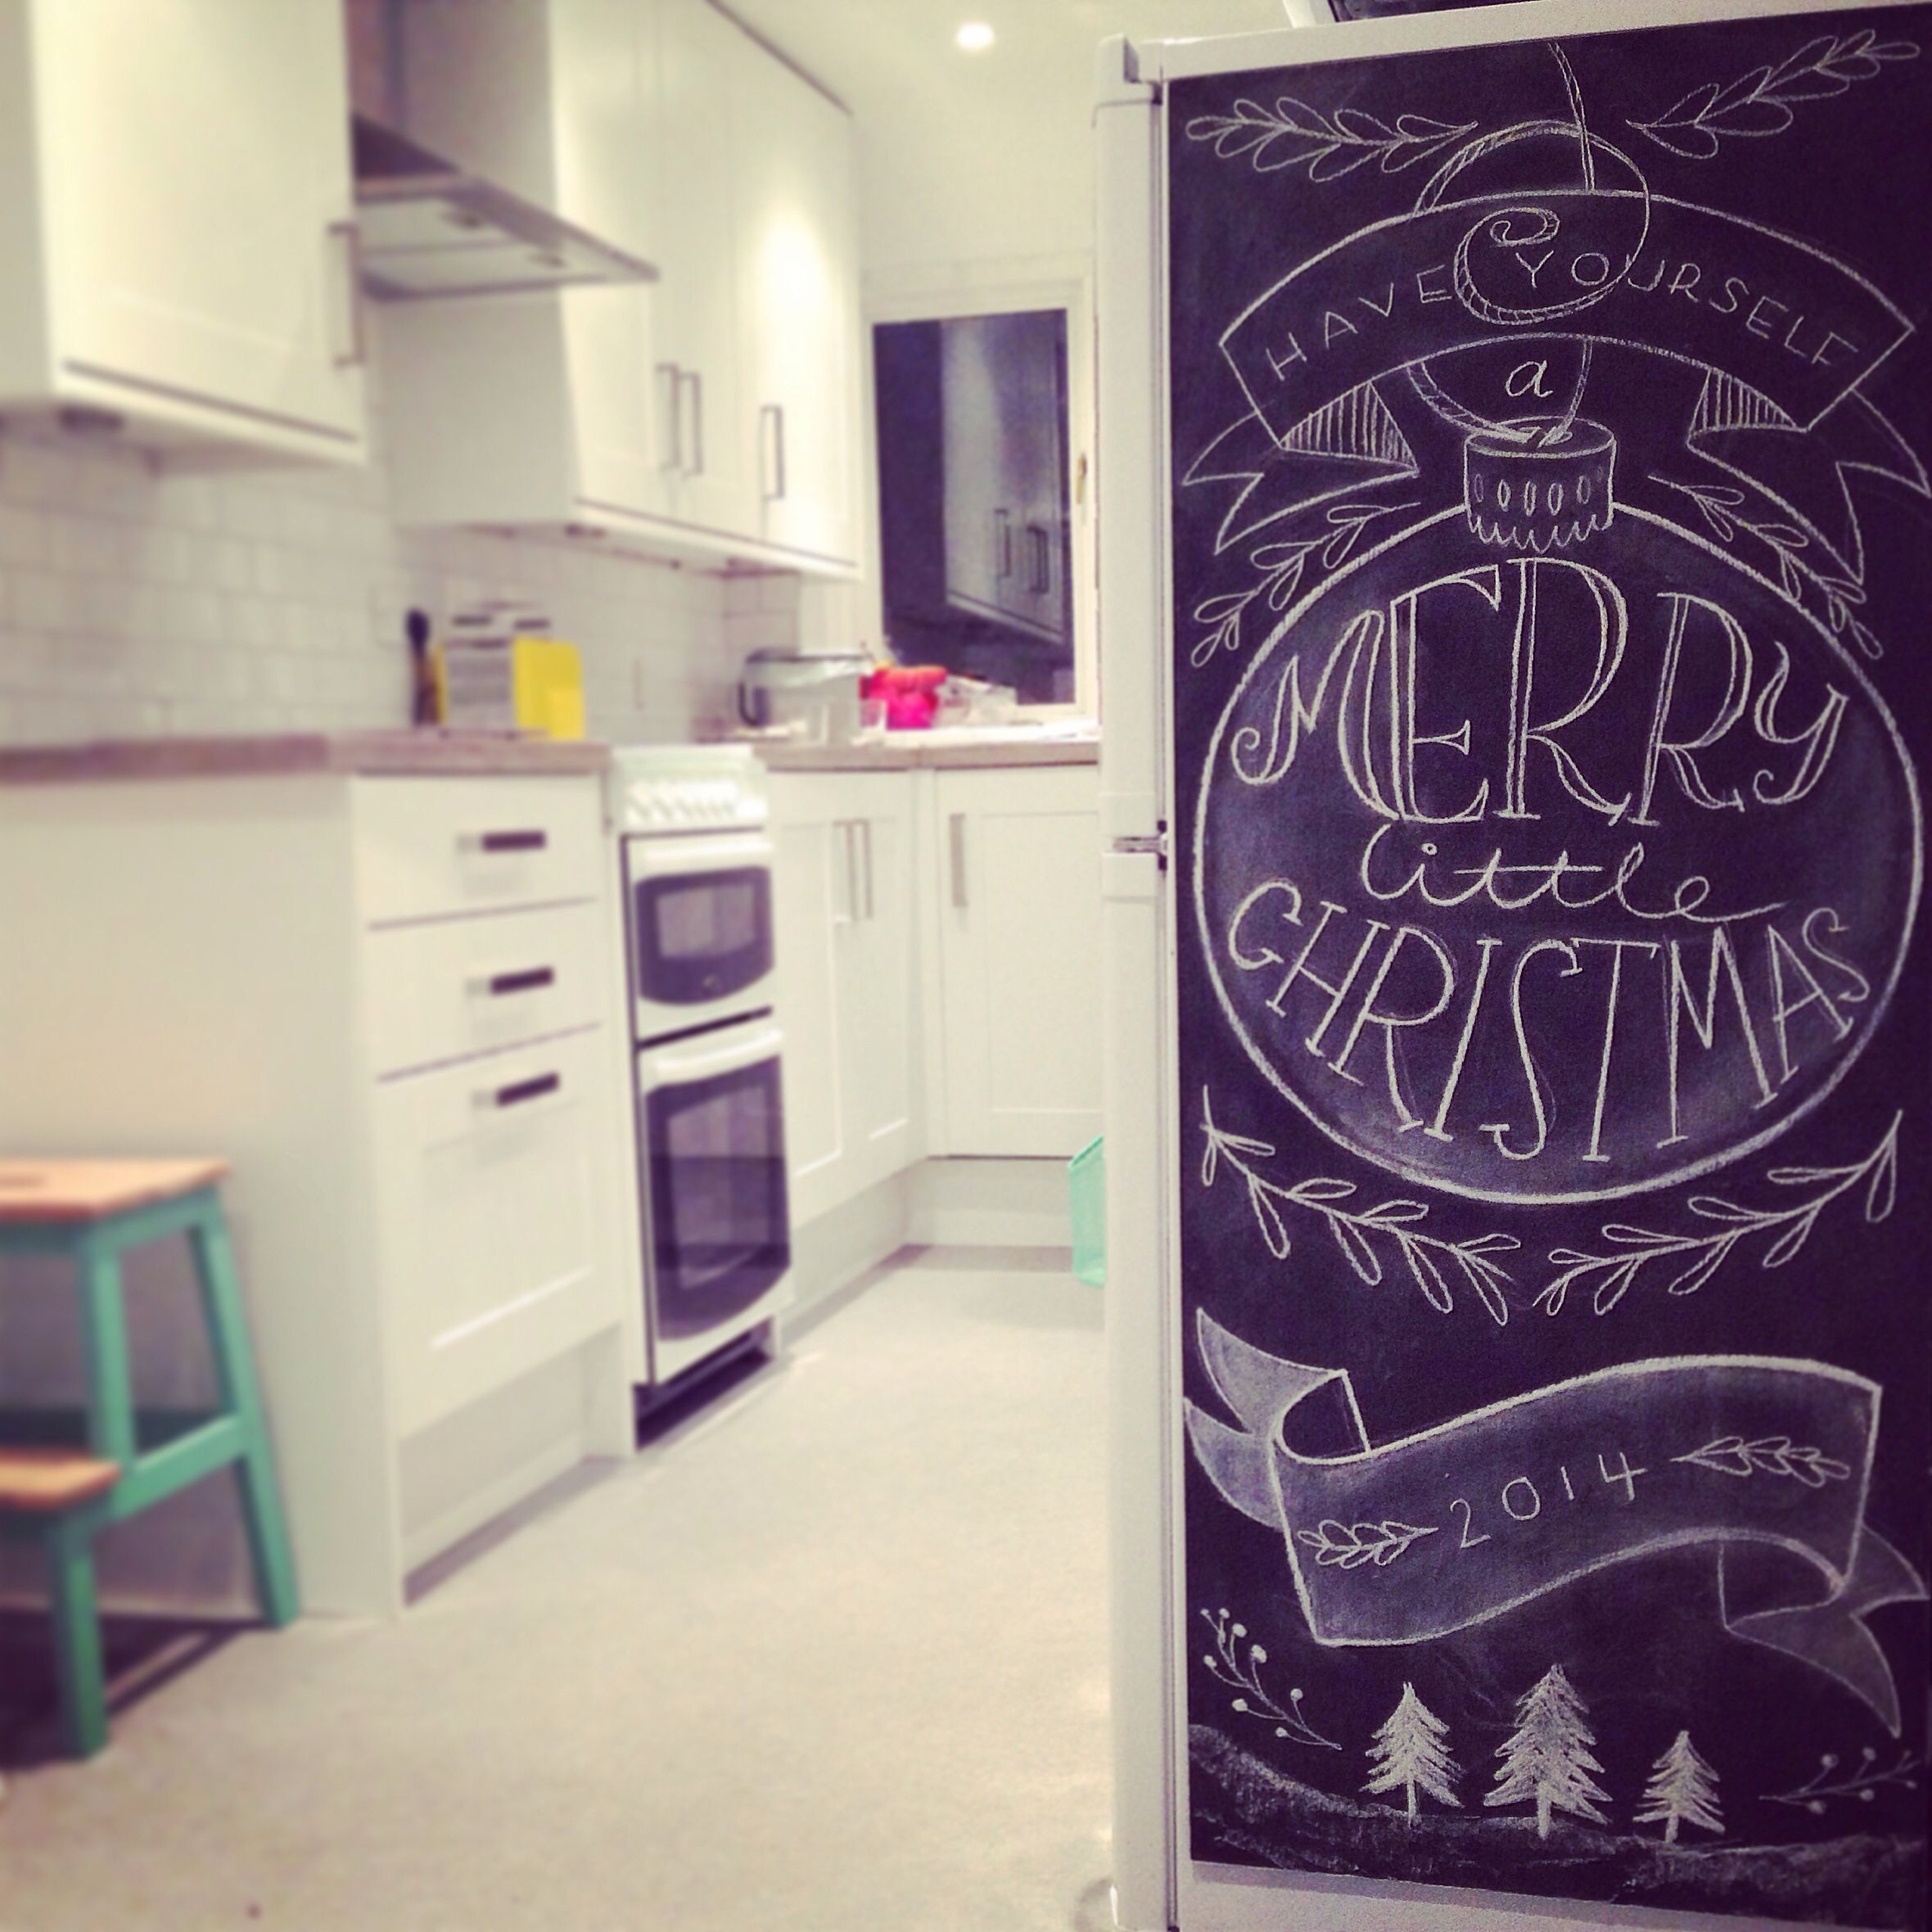 Getting our Christmas on at home with some festive chalkboard typography!